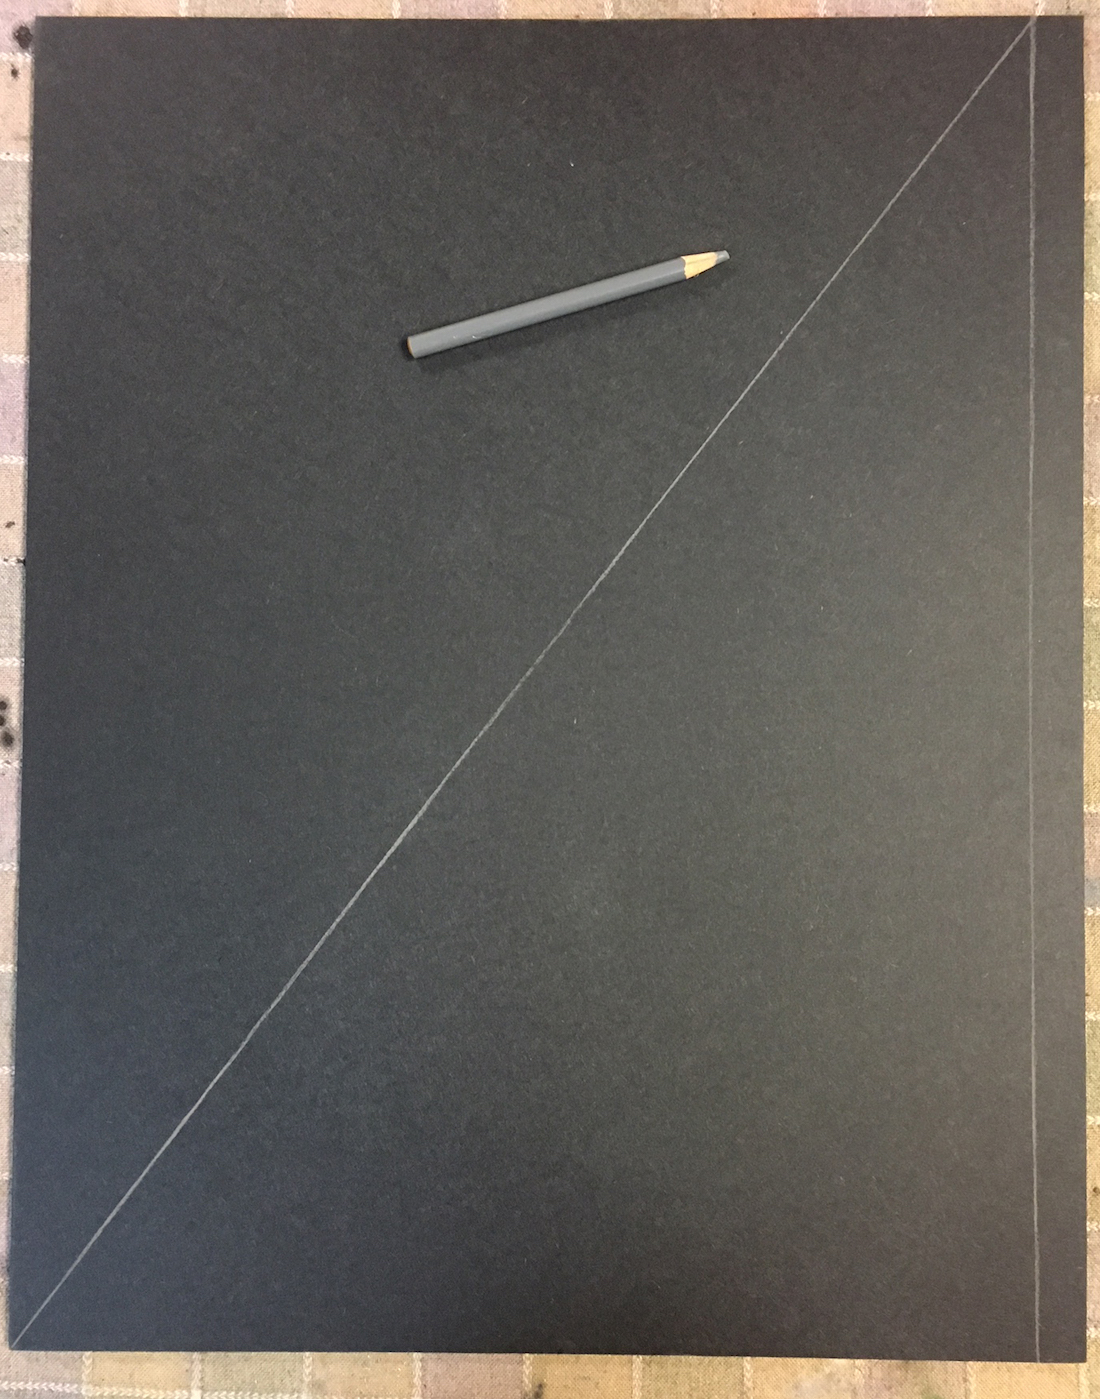 Chris Ivers: The vertical line showing the part of the painting that will need to be added to the original photo view.